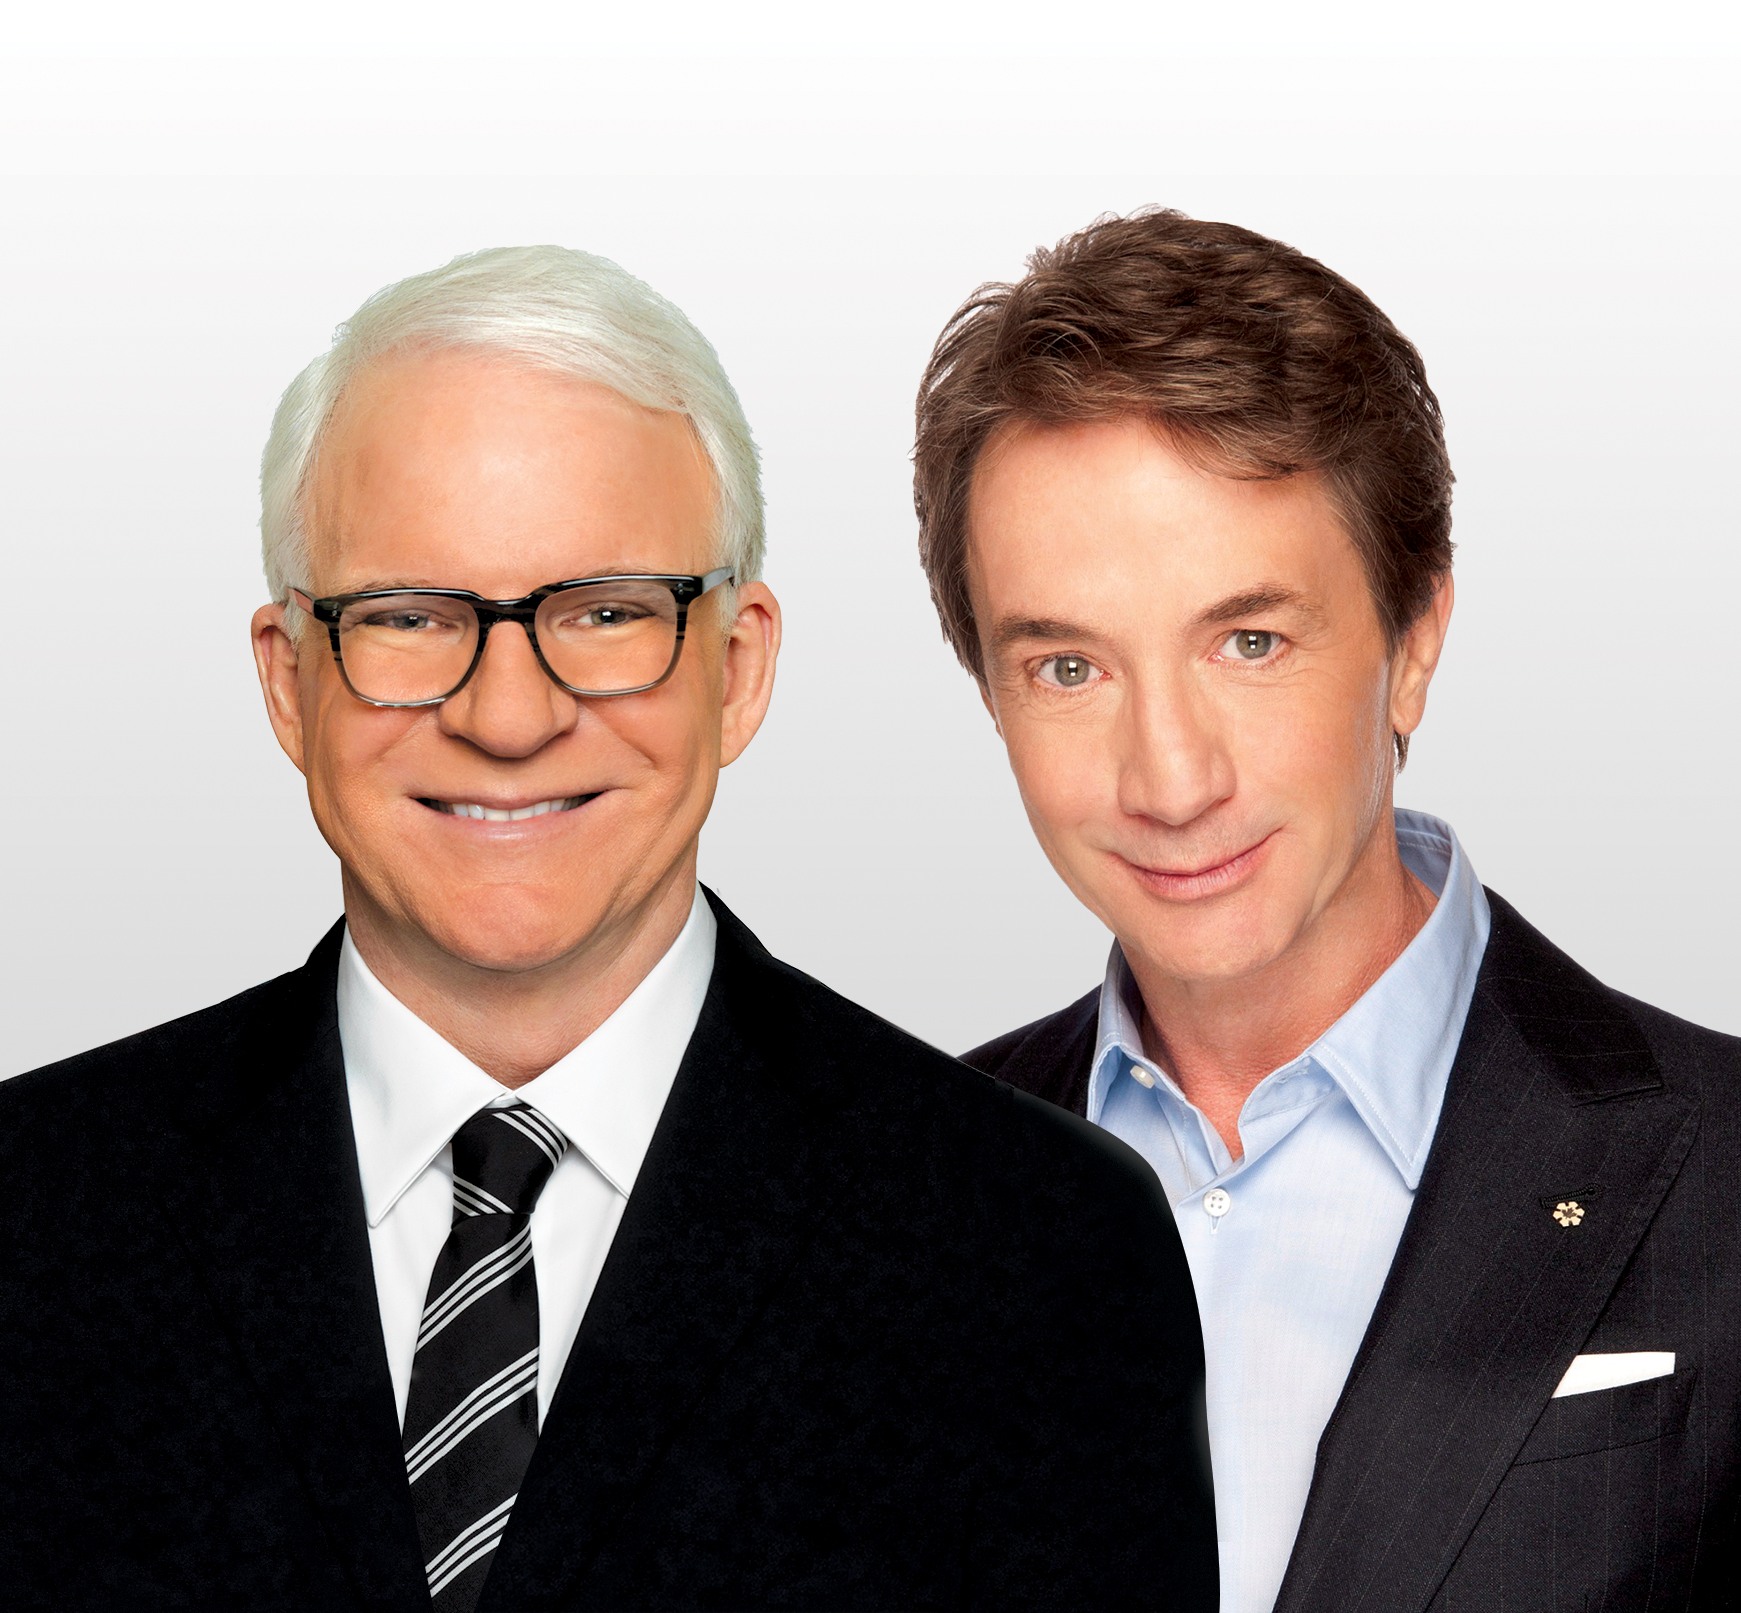 Steve Martin and Martin Short will perform at Hancher on Sept. 24.